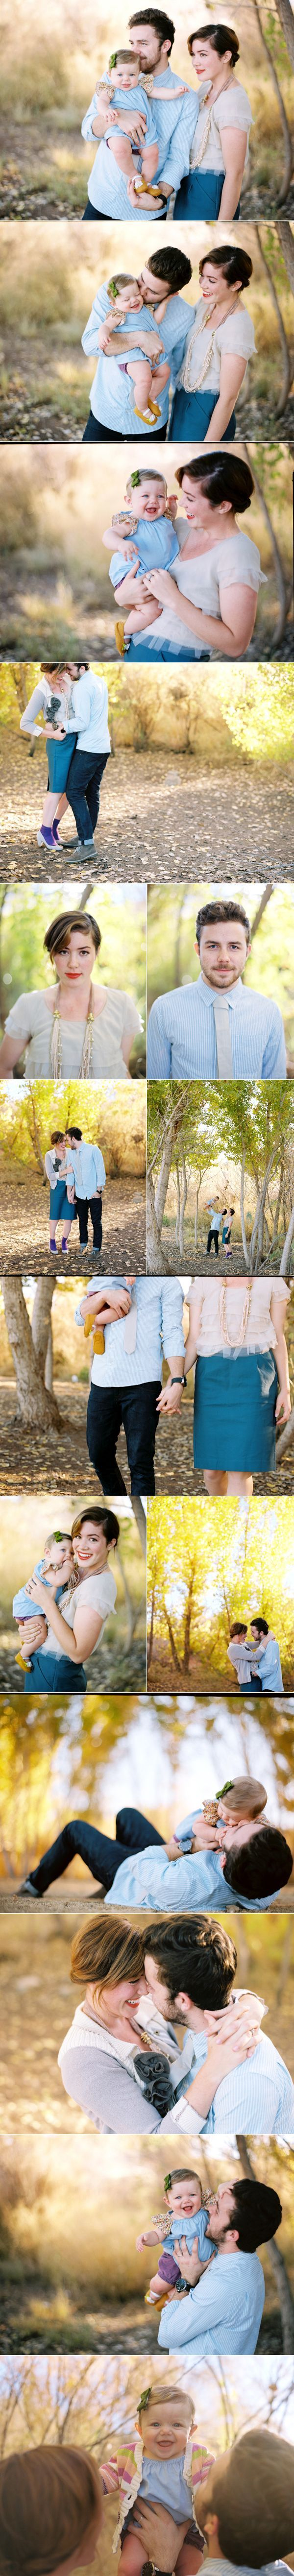 Very cute!: Photo Collage, Families Shoots, Families Pictures, Photo Ideas, Families Poses, Families Photography, Families Pics, Photo Shoots, Families Portraits